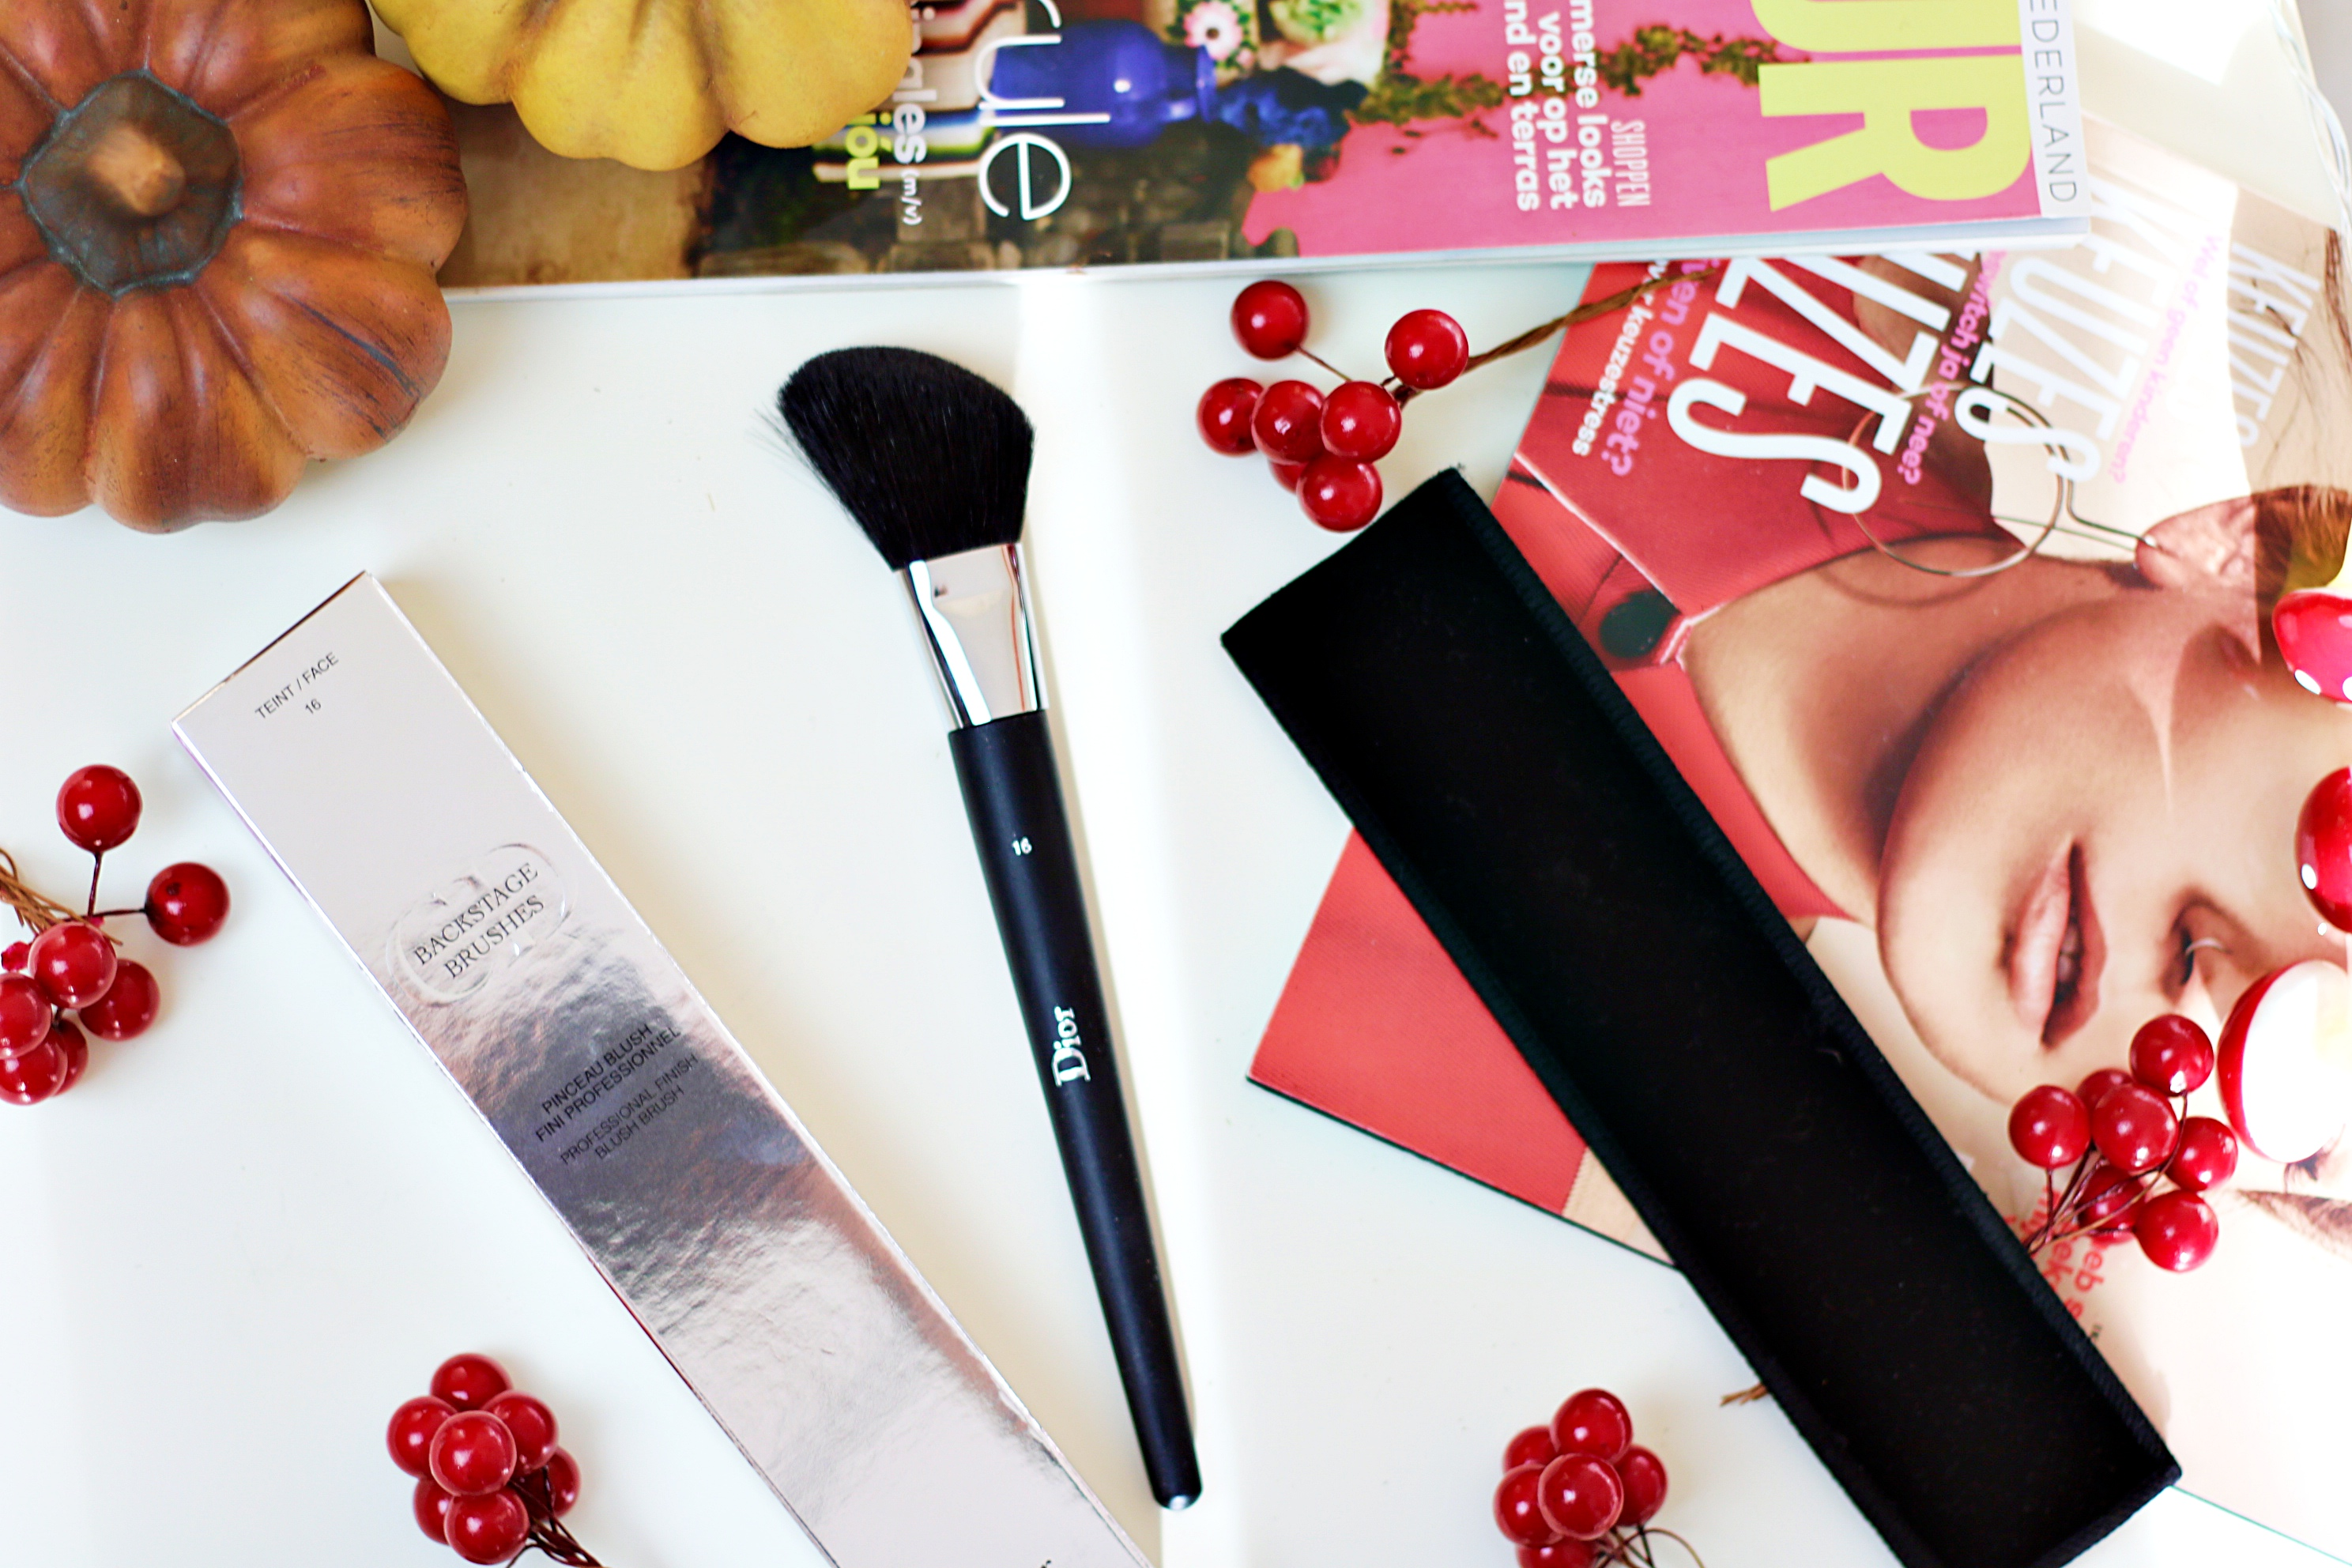 Dior Backstage Blush Brush No. 16